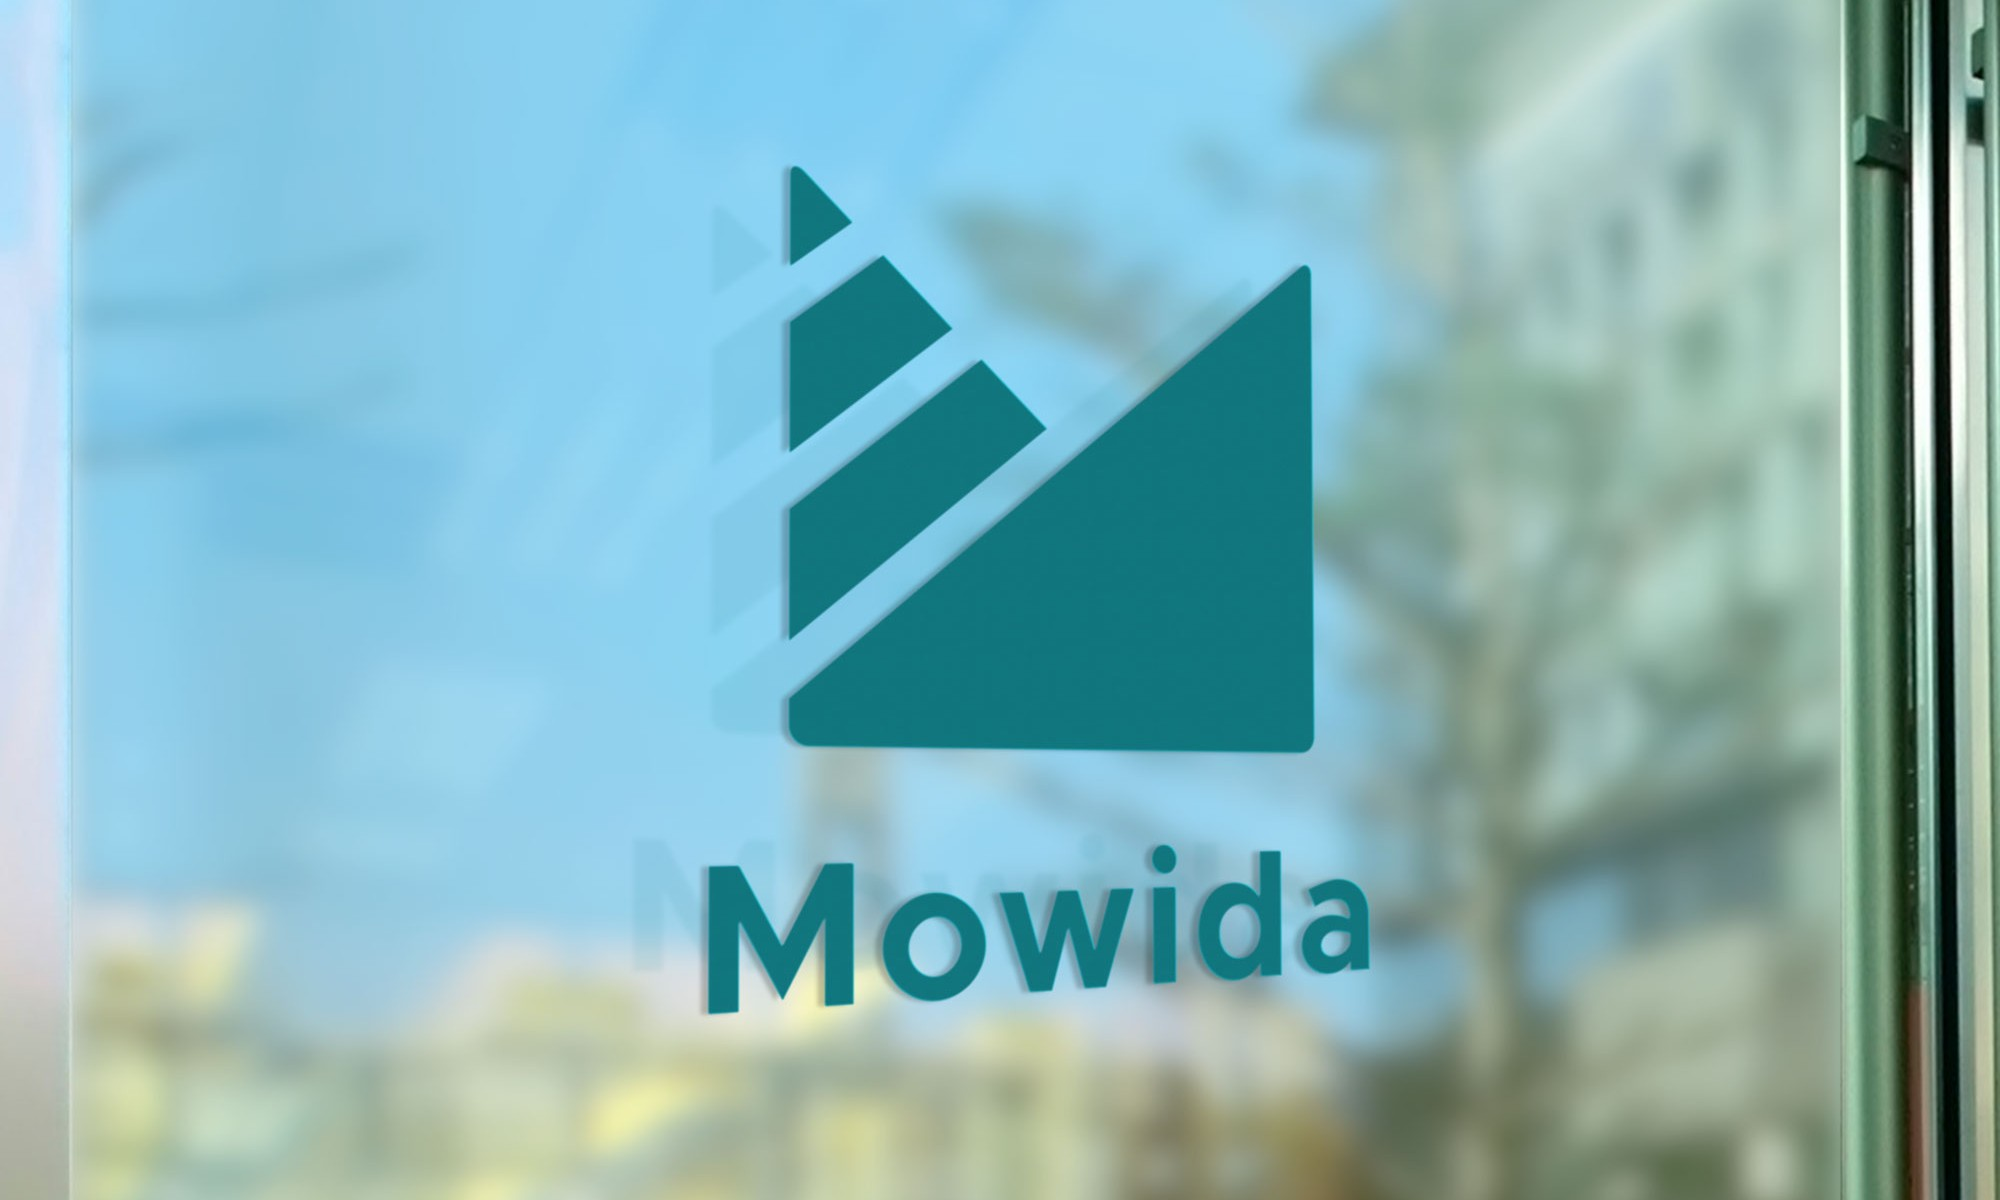 Mowida logotype signage design by Kogit Design